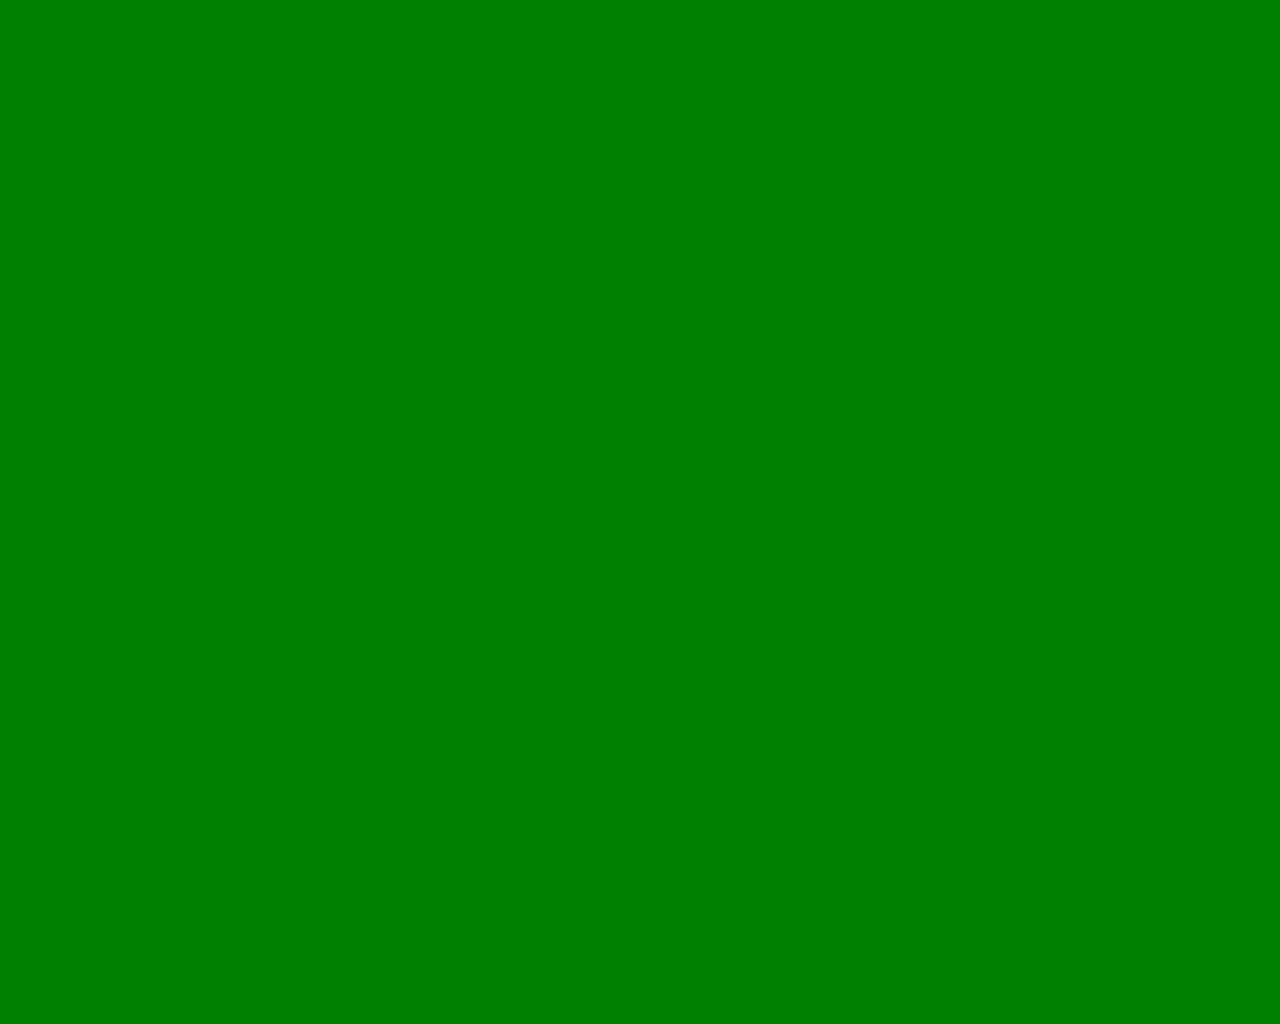 X Office Green Solid Color Background